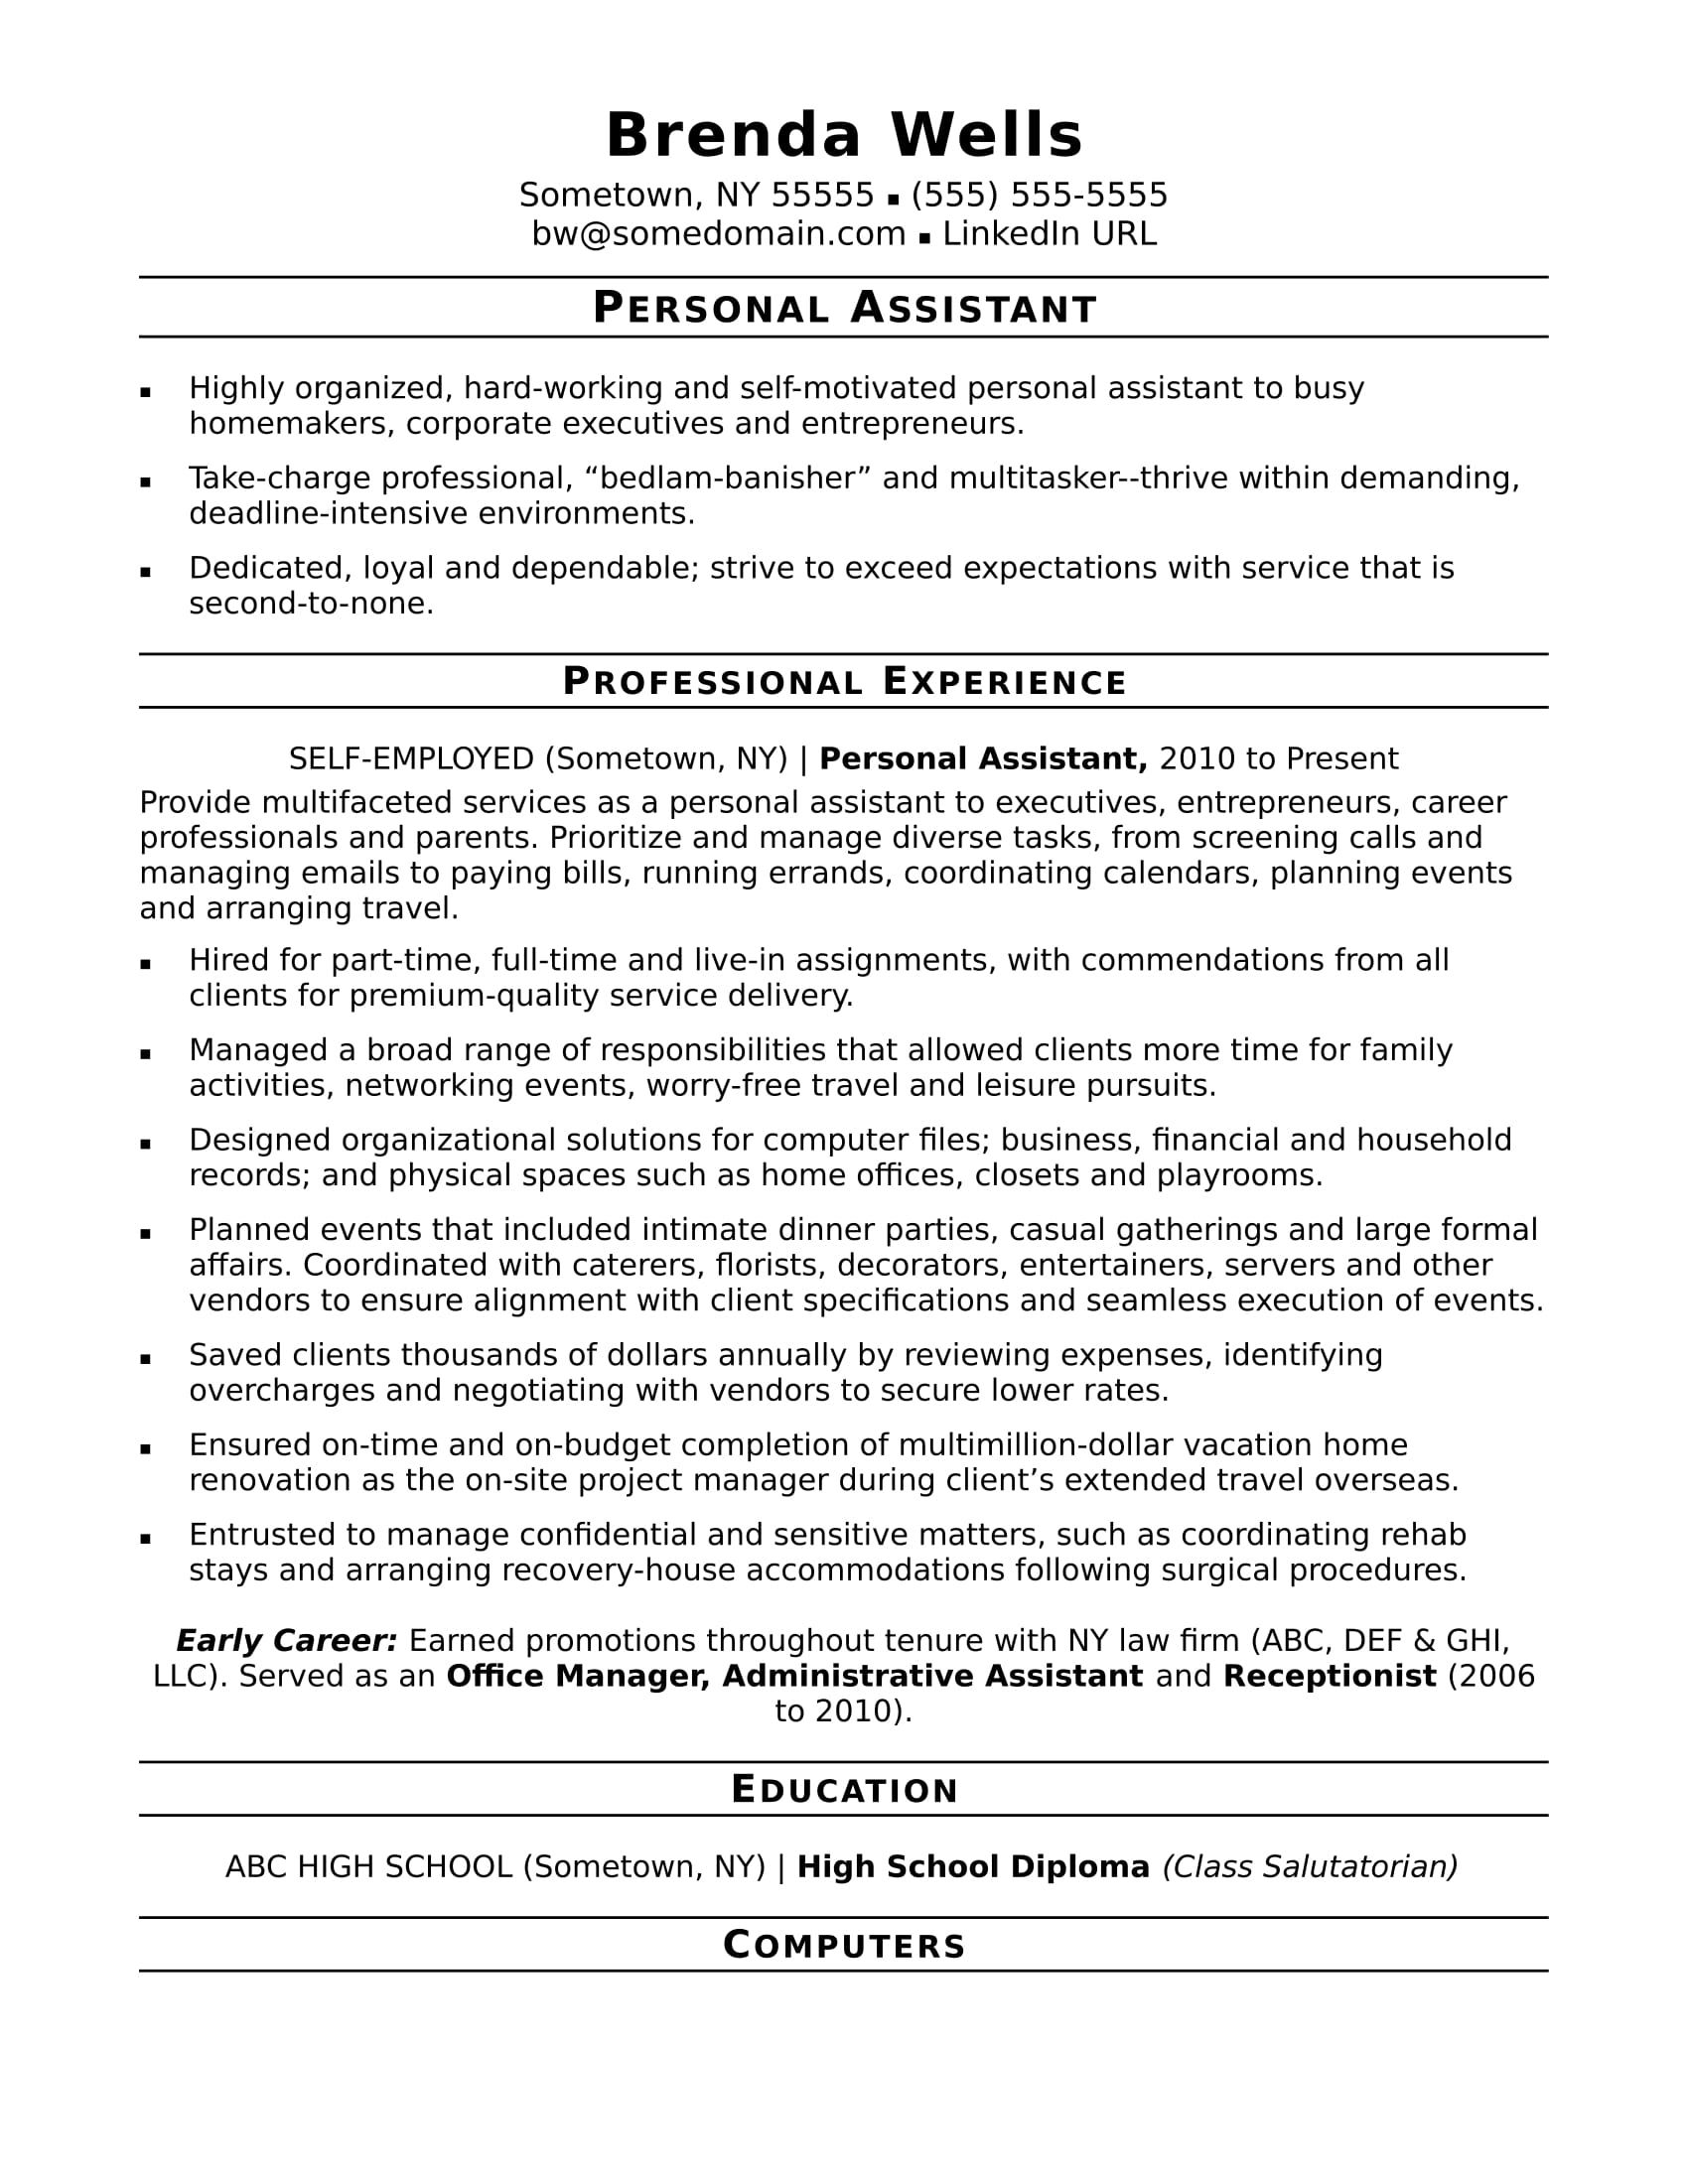 Personal Assistant Resume Sample Administrative Assistant Cover Letter Job Resume Examples Resume Examples